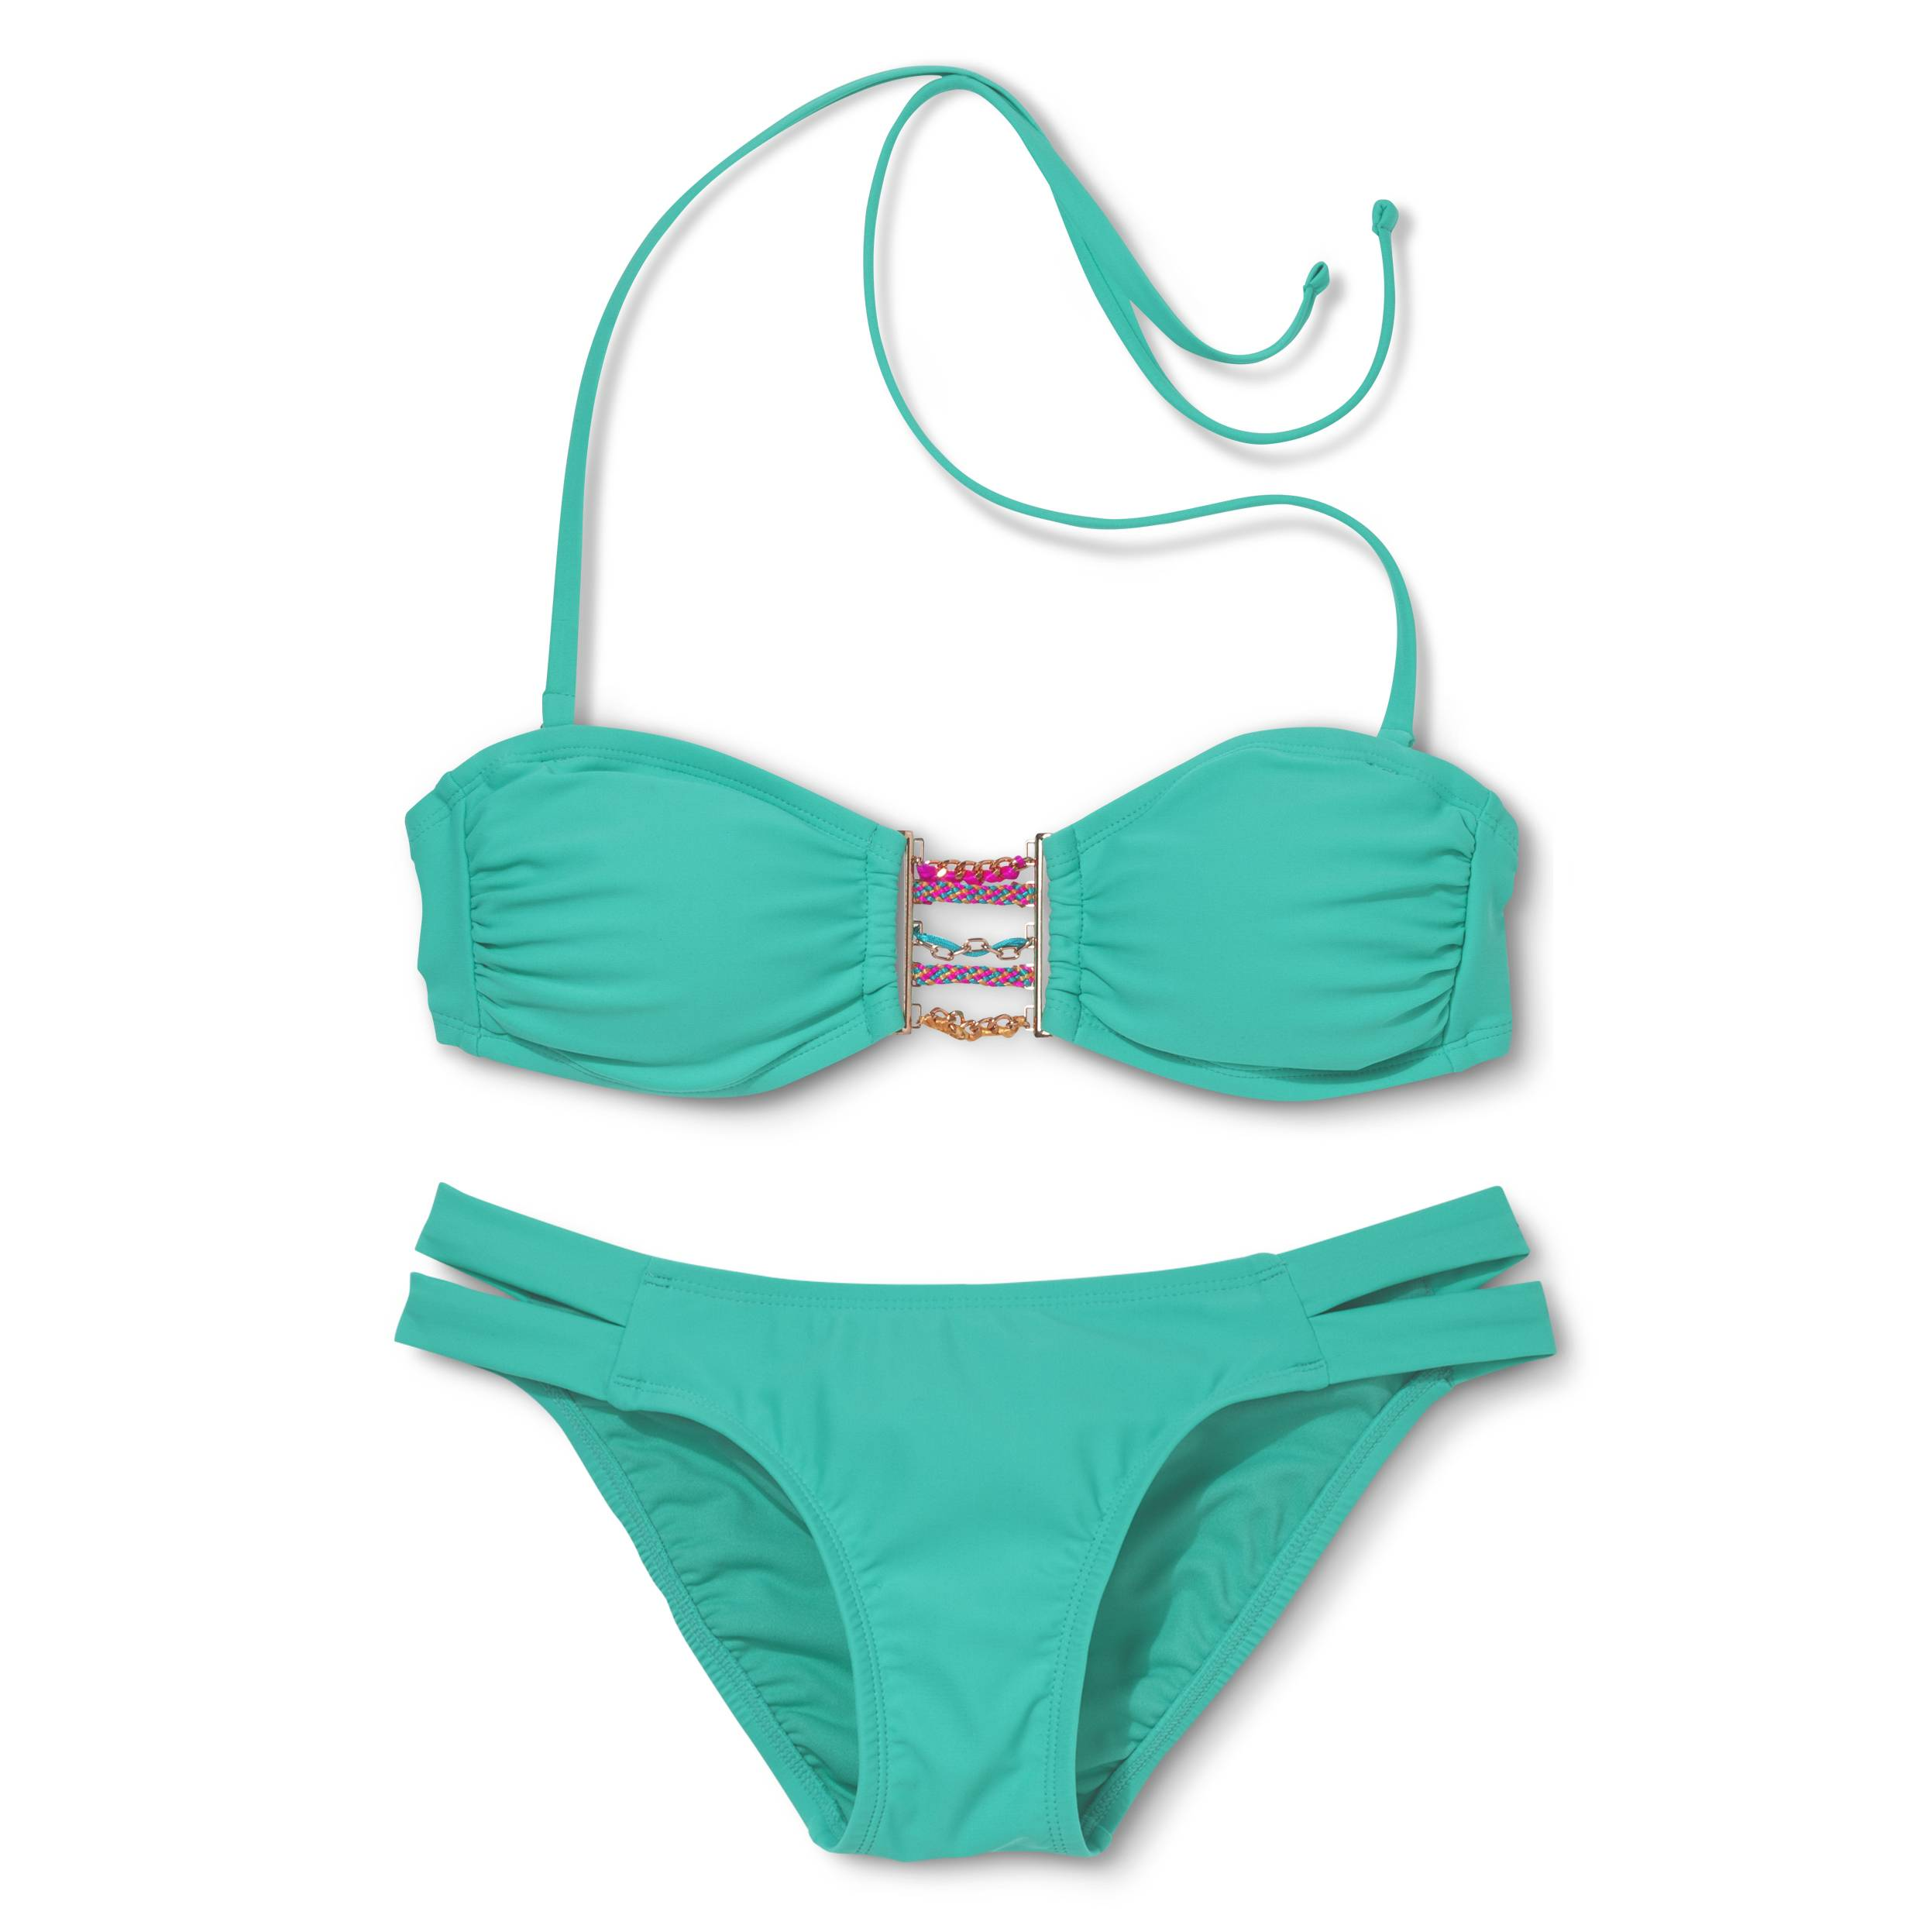 This year's swimwear trends include bold colors, metallic materials and sporty styles.